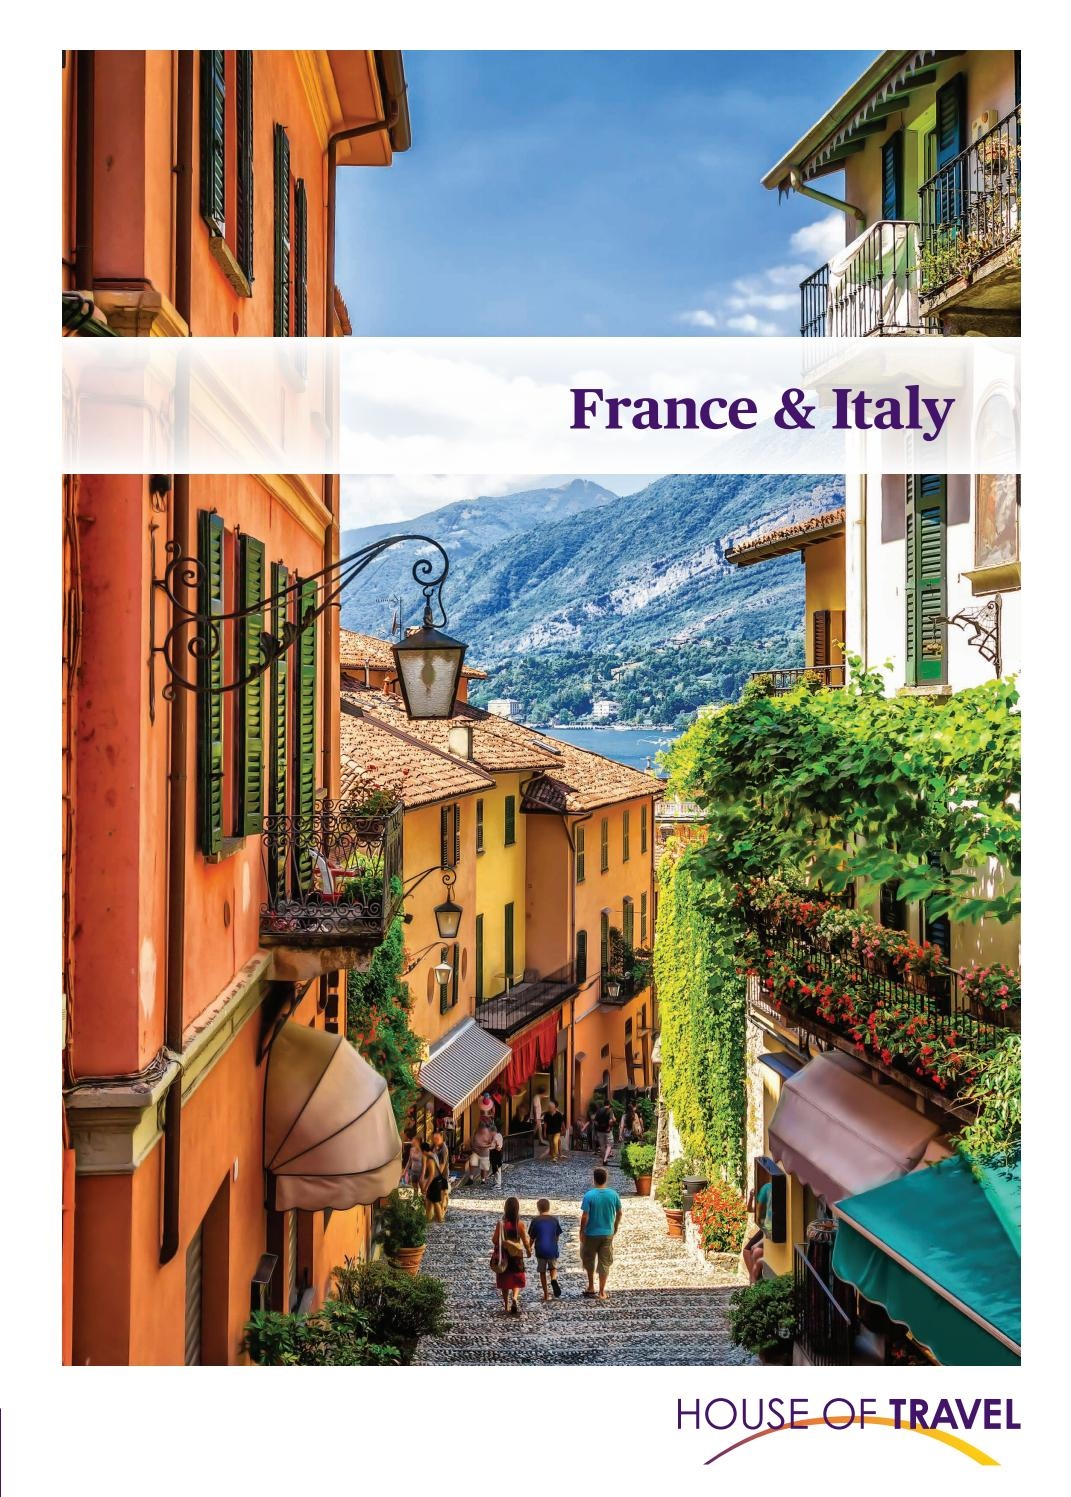 Zen Arte E Aroma France Italy Brochure 2019 By House Of Travel Issuu